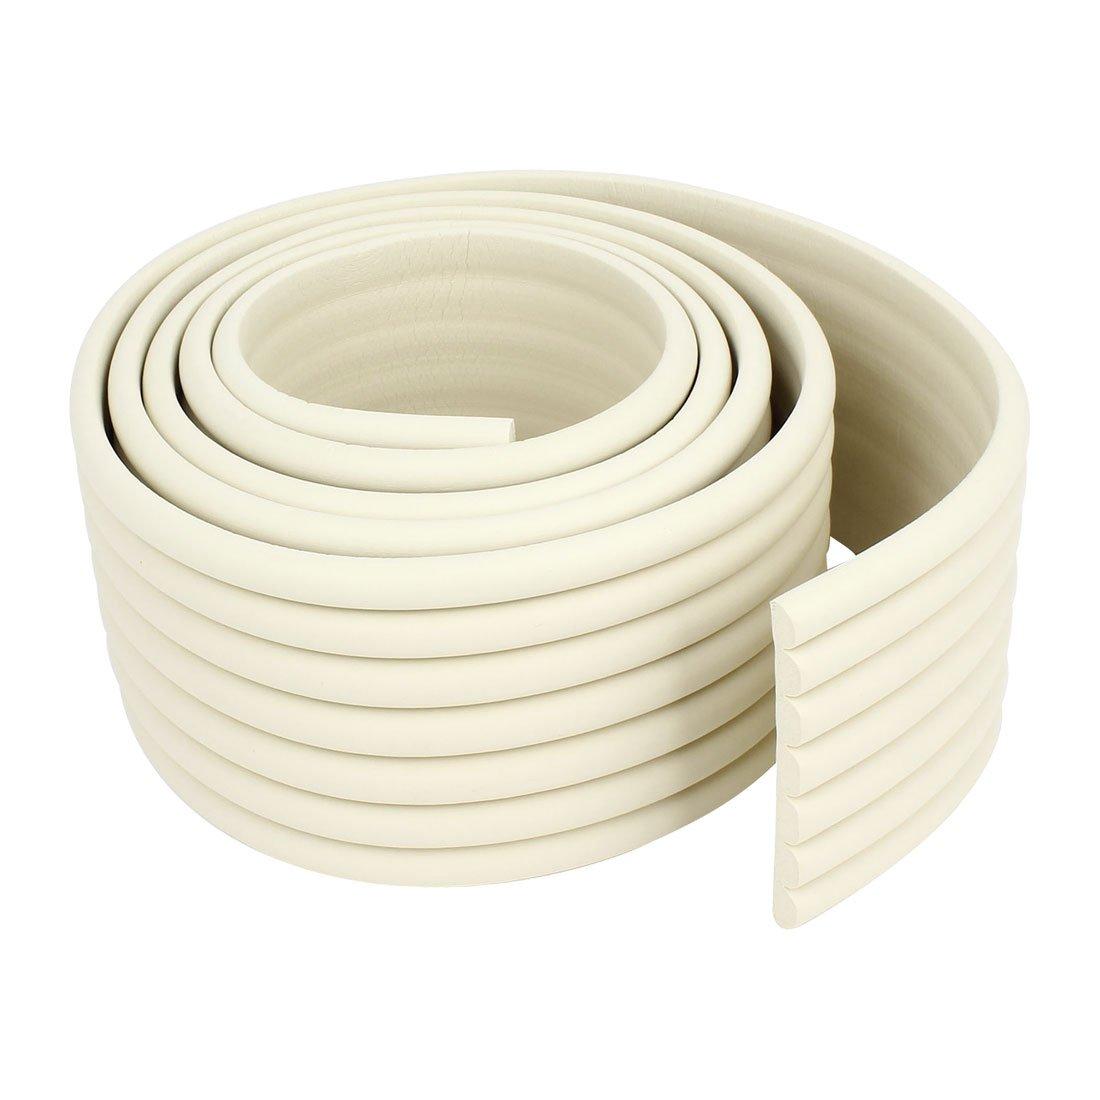 uxcell Off White Soft Flexible Foam Table Protector Edge Guard Strip 2M Long a14080600ux0173